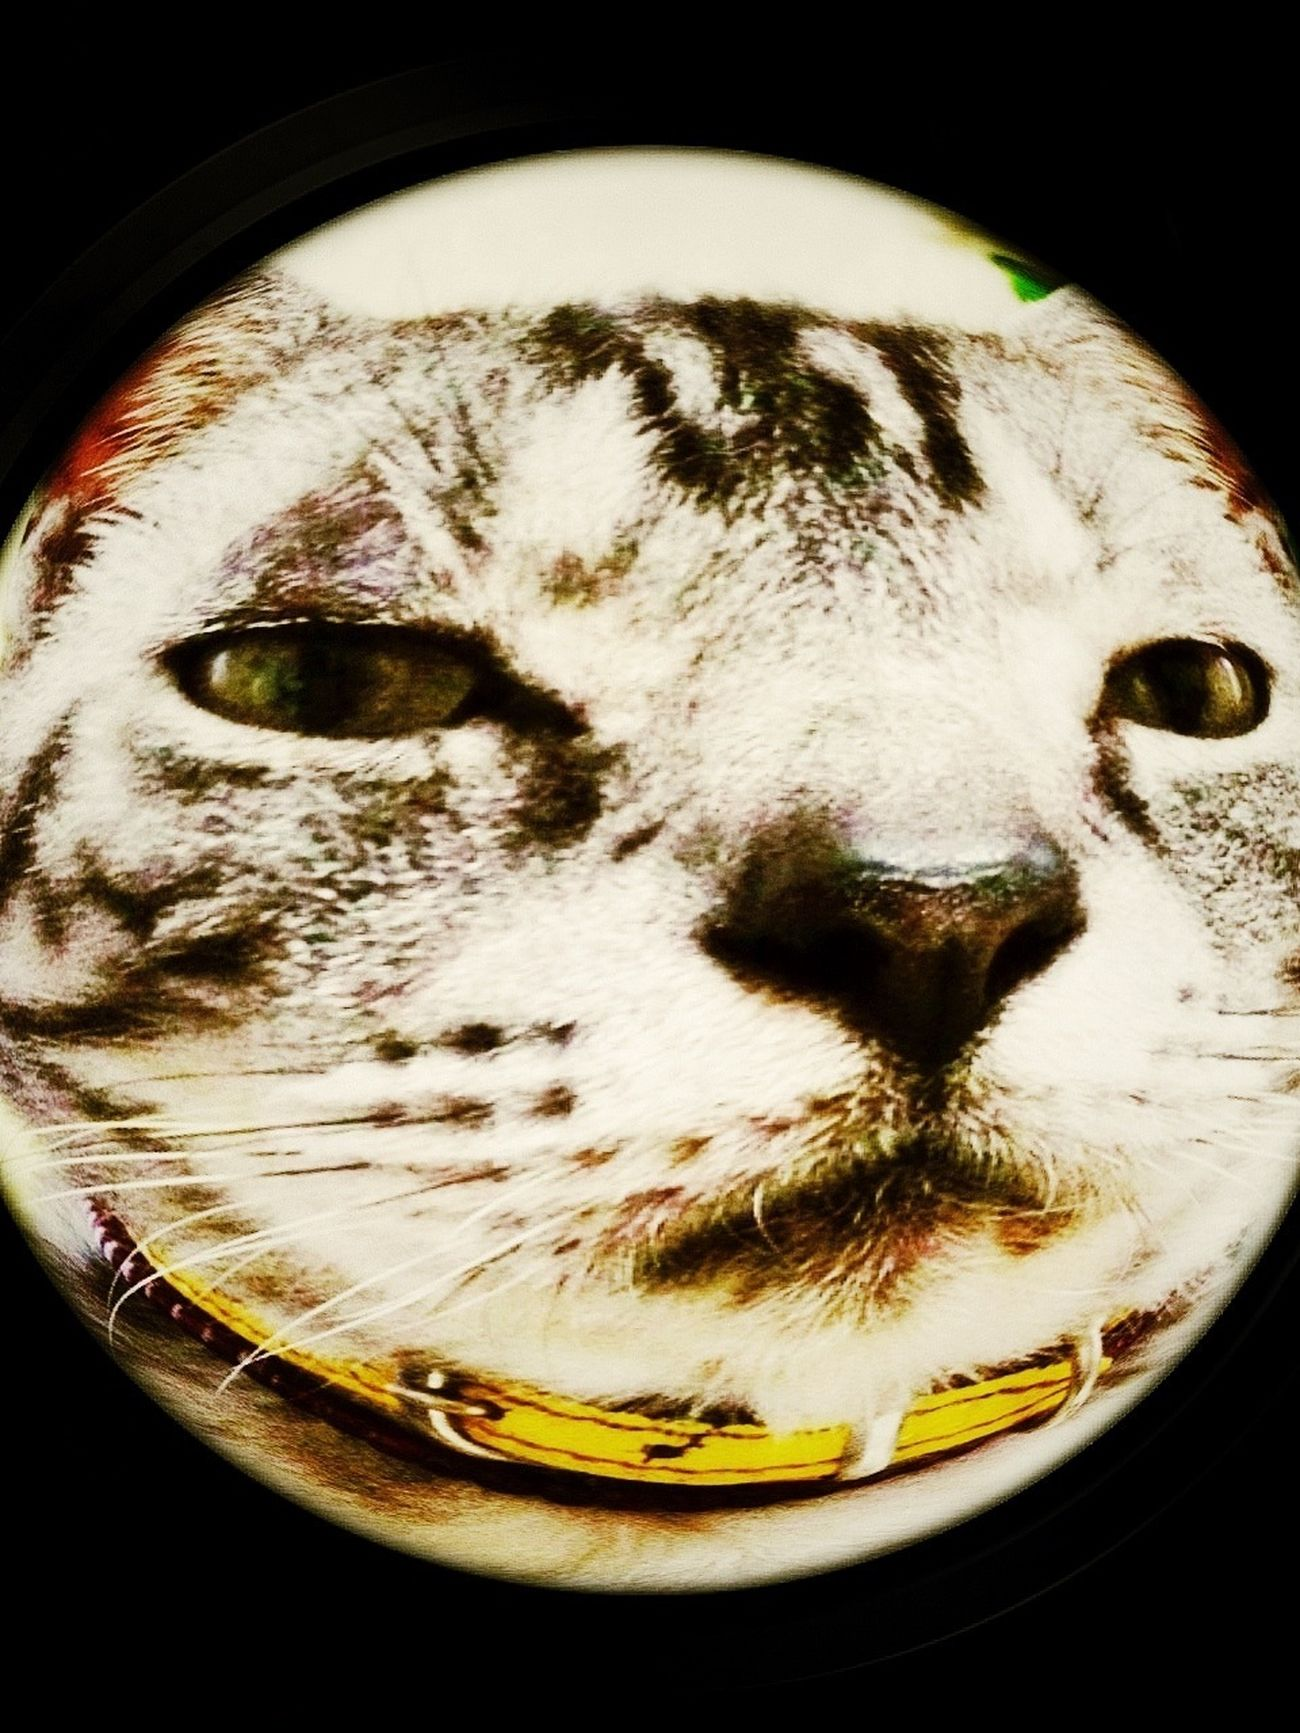 Cat My Cat Fish Eye まぬけづら。